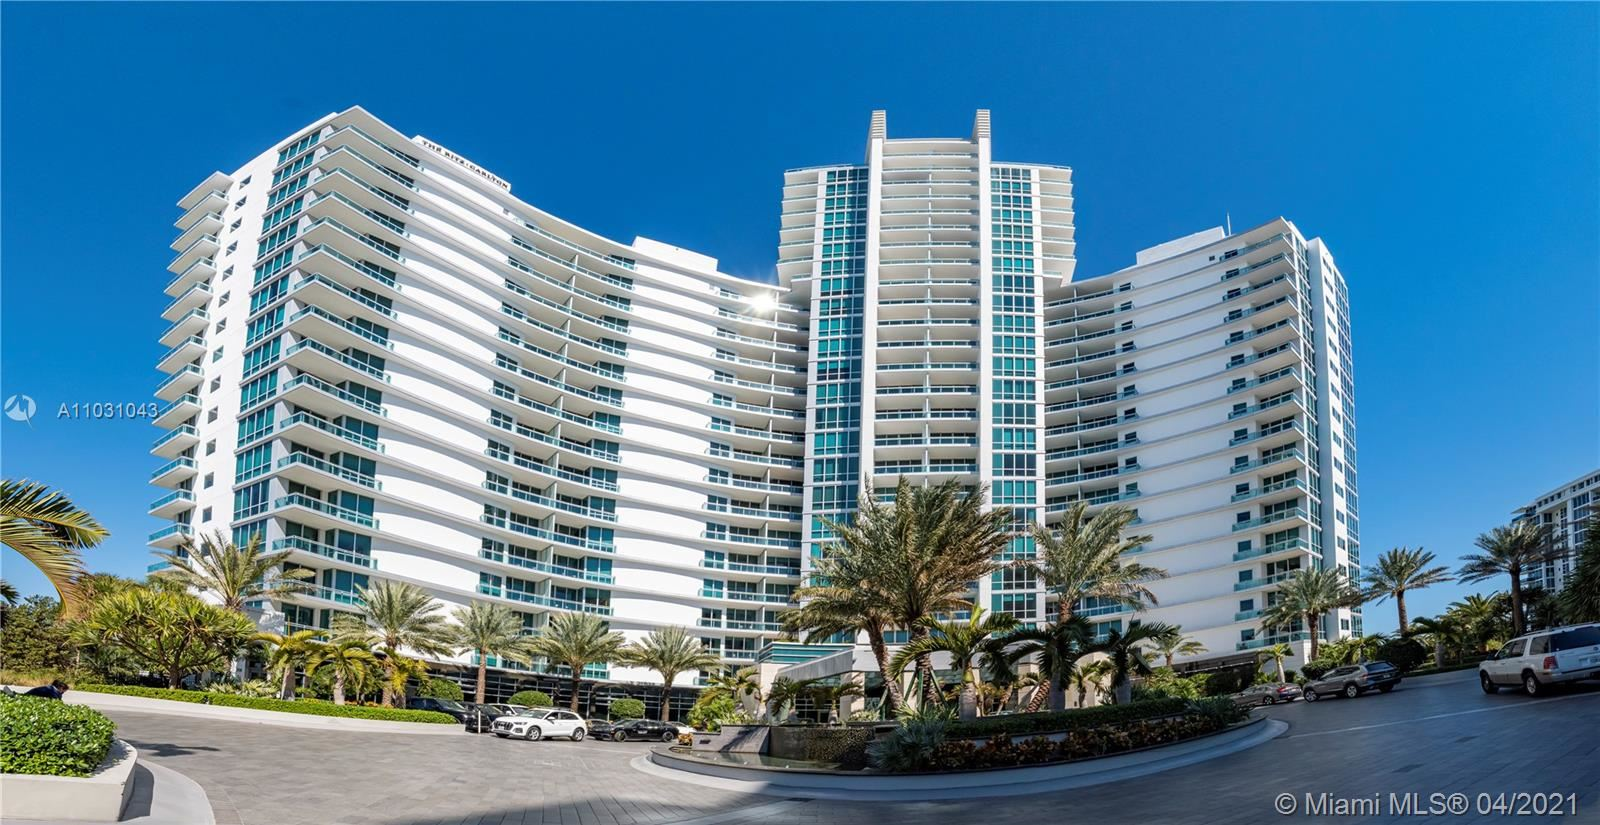 Photo of 10295 Collins Ave #911, Bal Harbour, FL 33154 (MLS # A11031043)